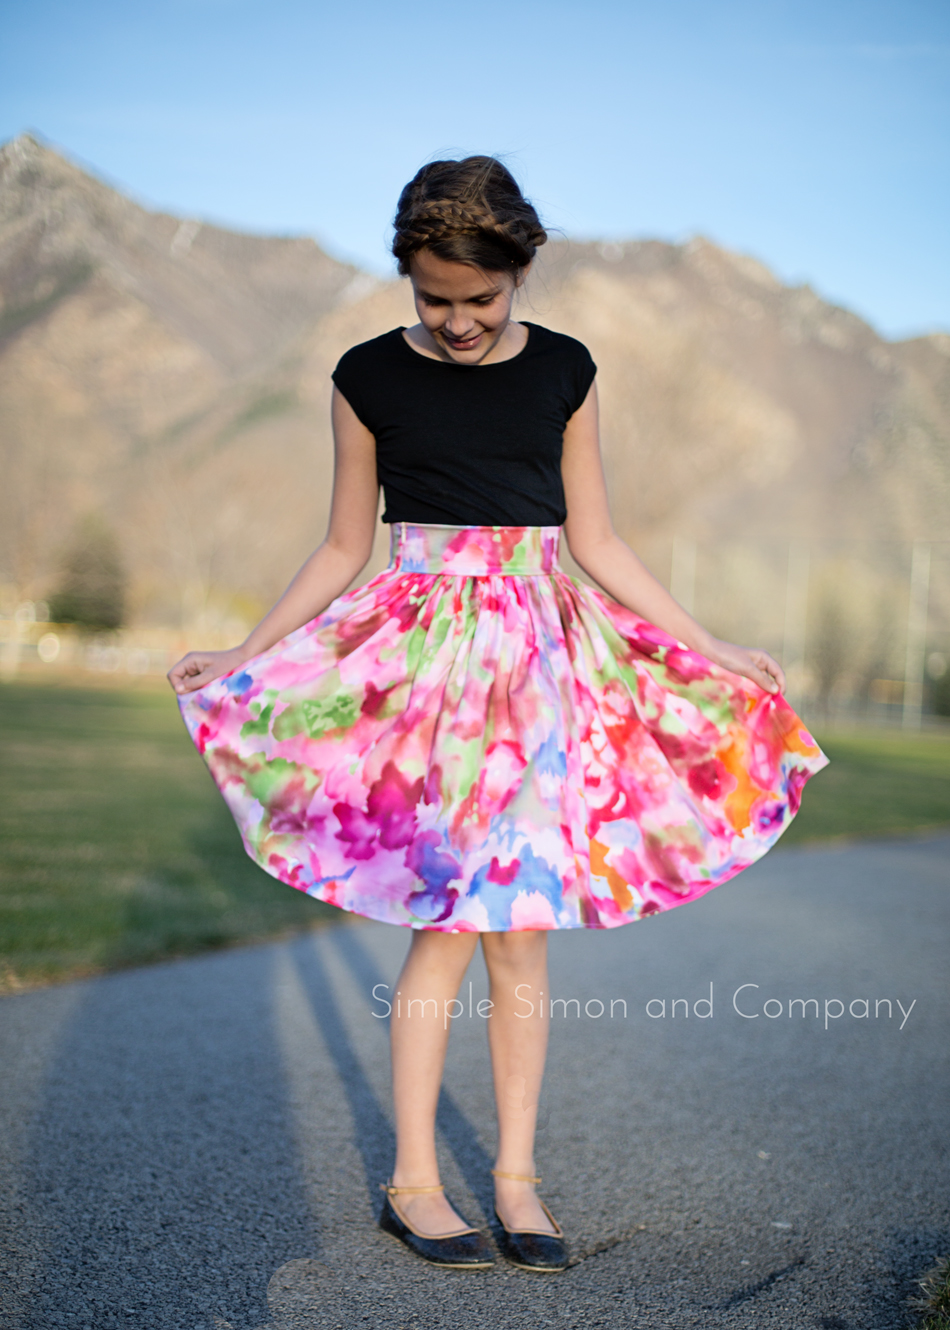 A SPRING SKIRT—AND A TUTORIAL ON AN EASY GATHERED SKIRT from SIMPLE SIMON AND COMPANY